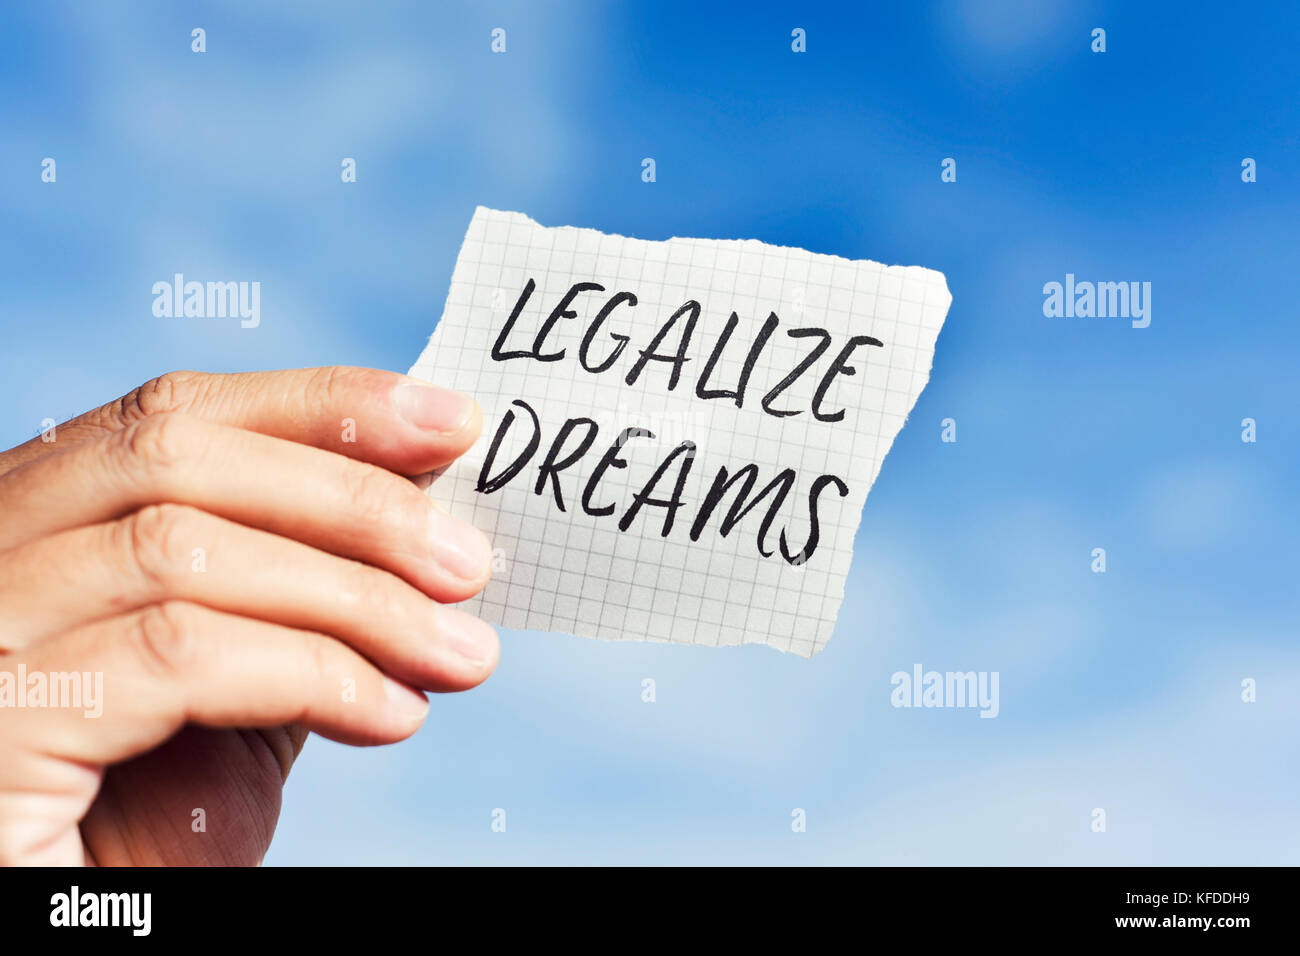 closeup of the hand of a young caucasian man holding a pieces of paper with the text legalize dreams written in - Stock Image